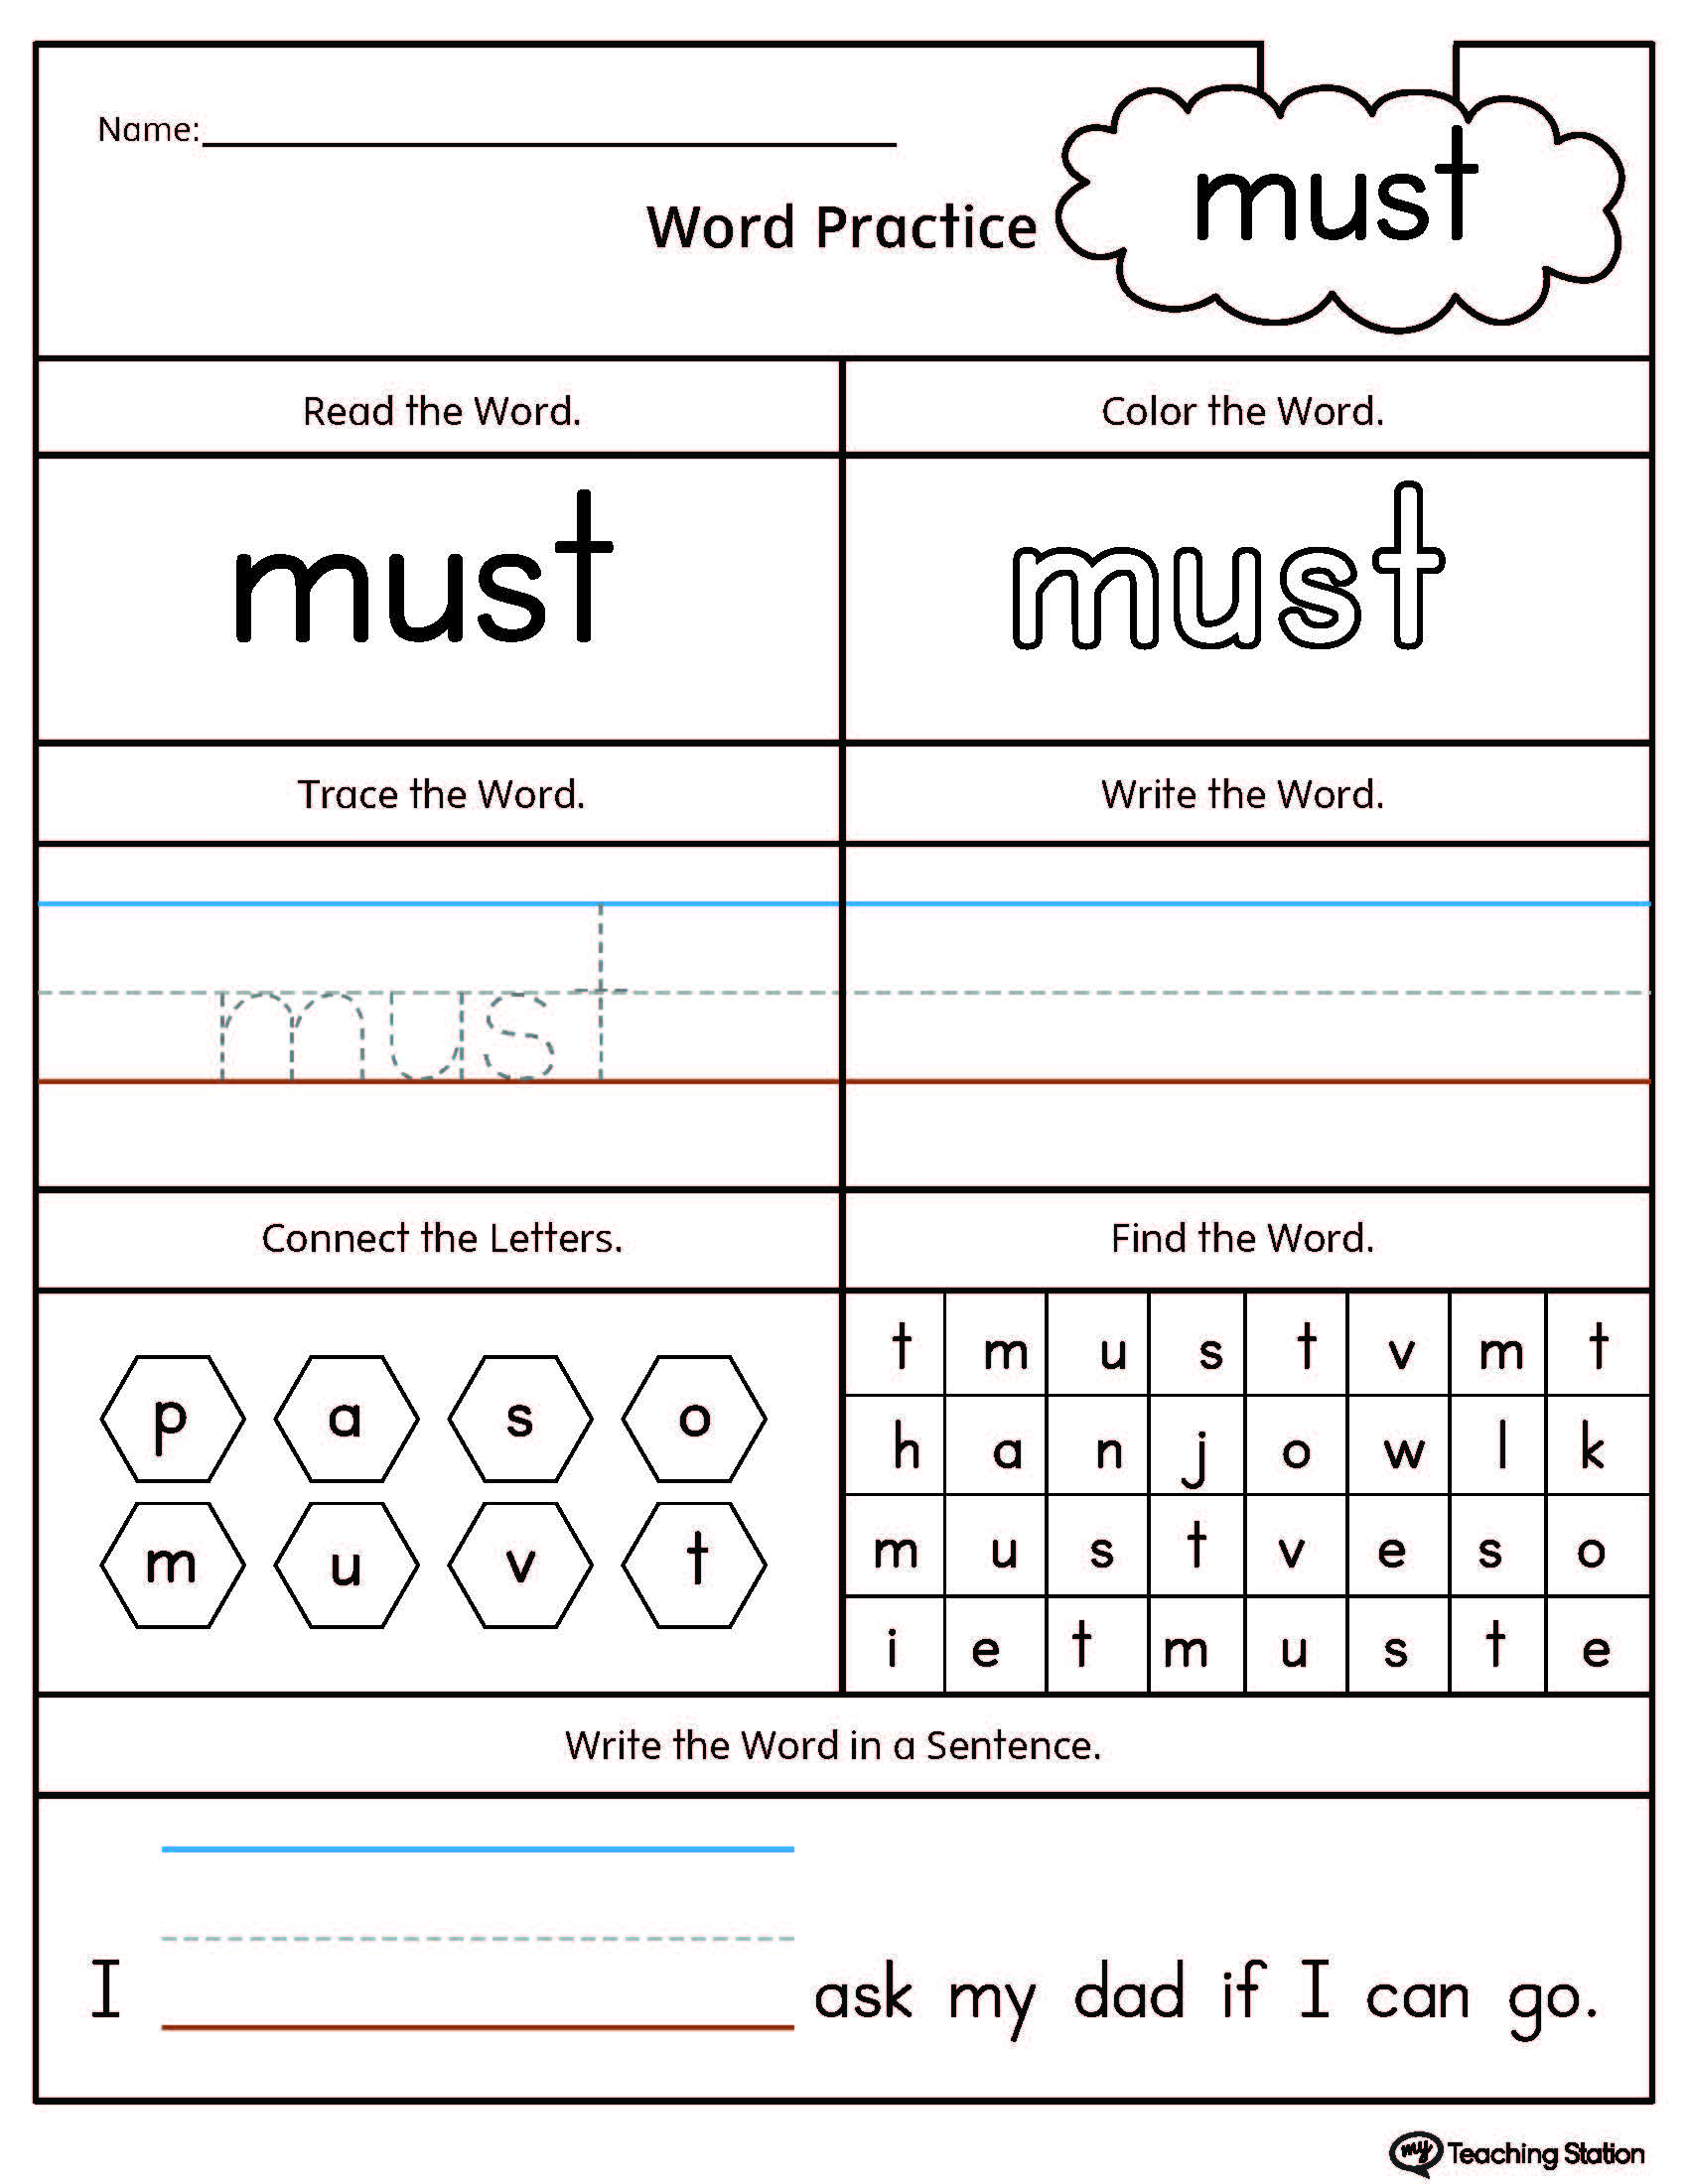 High Frequency Word Must Printable Worksheet